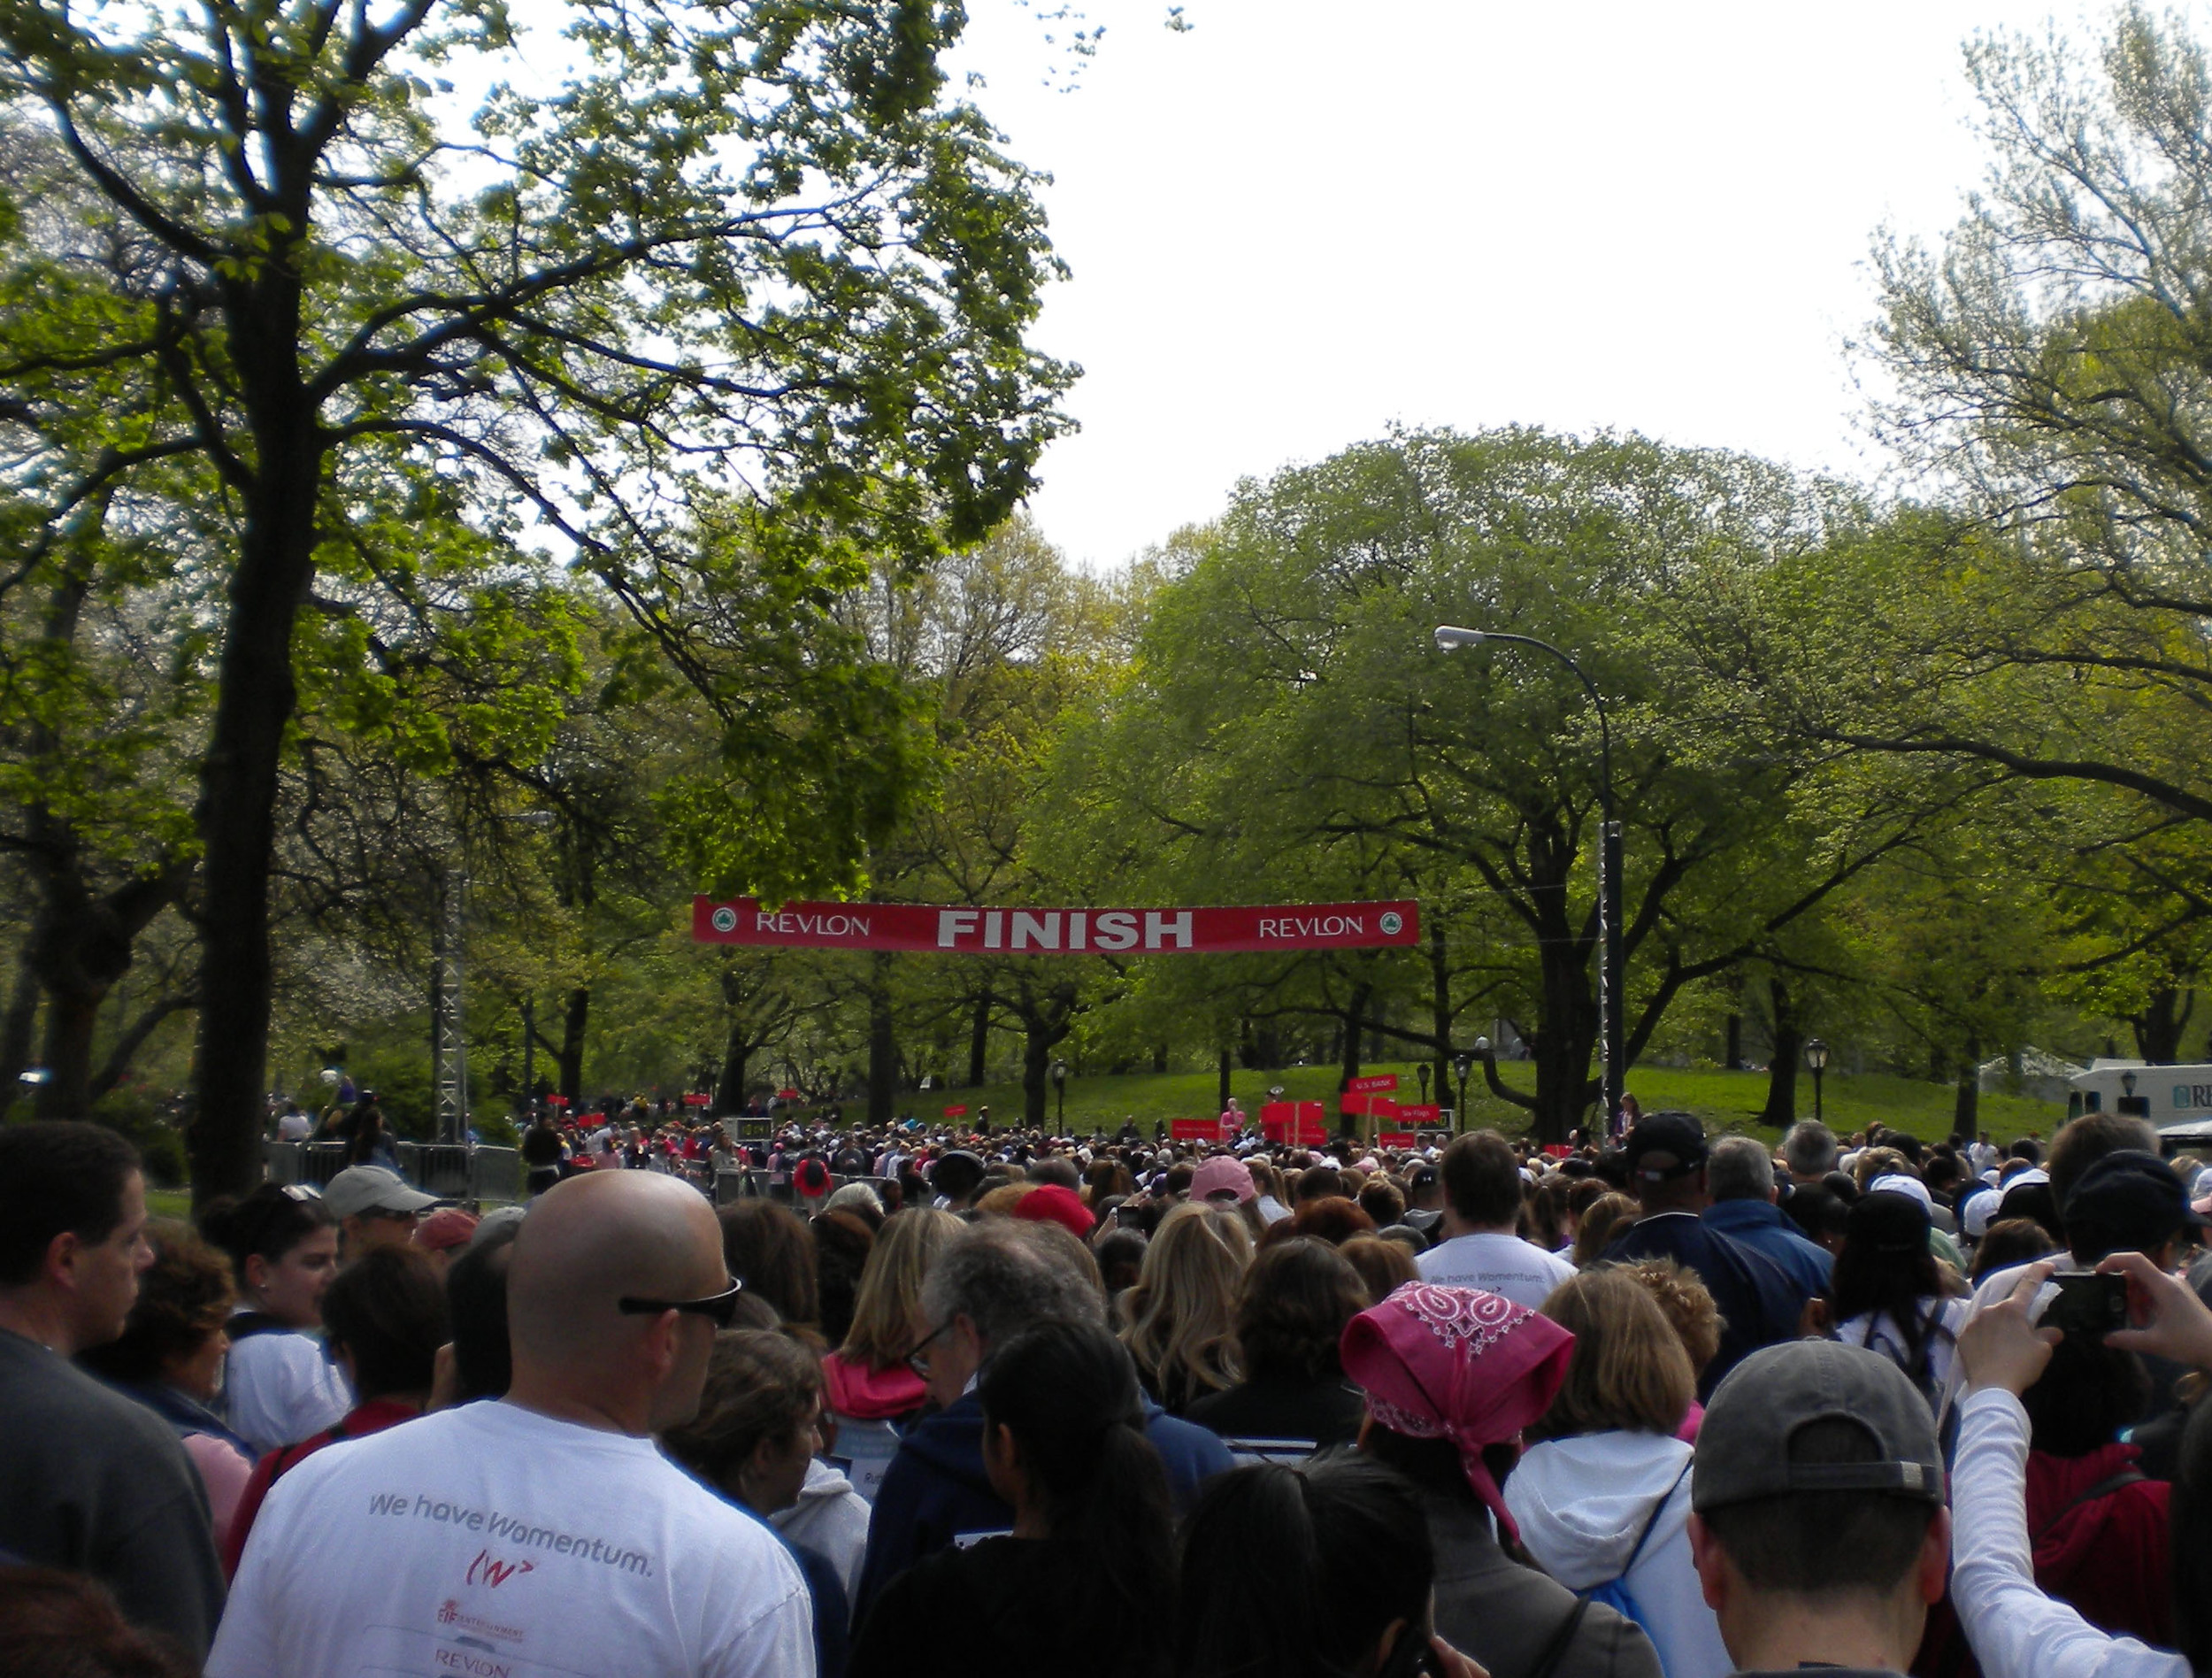 The finish line in Central Park